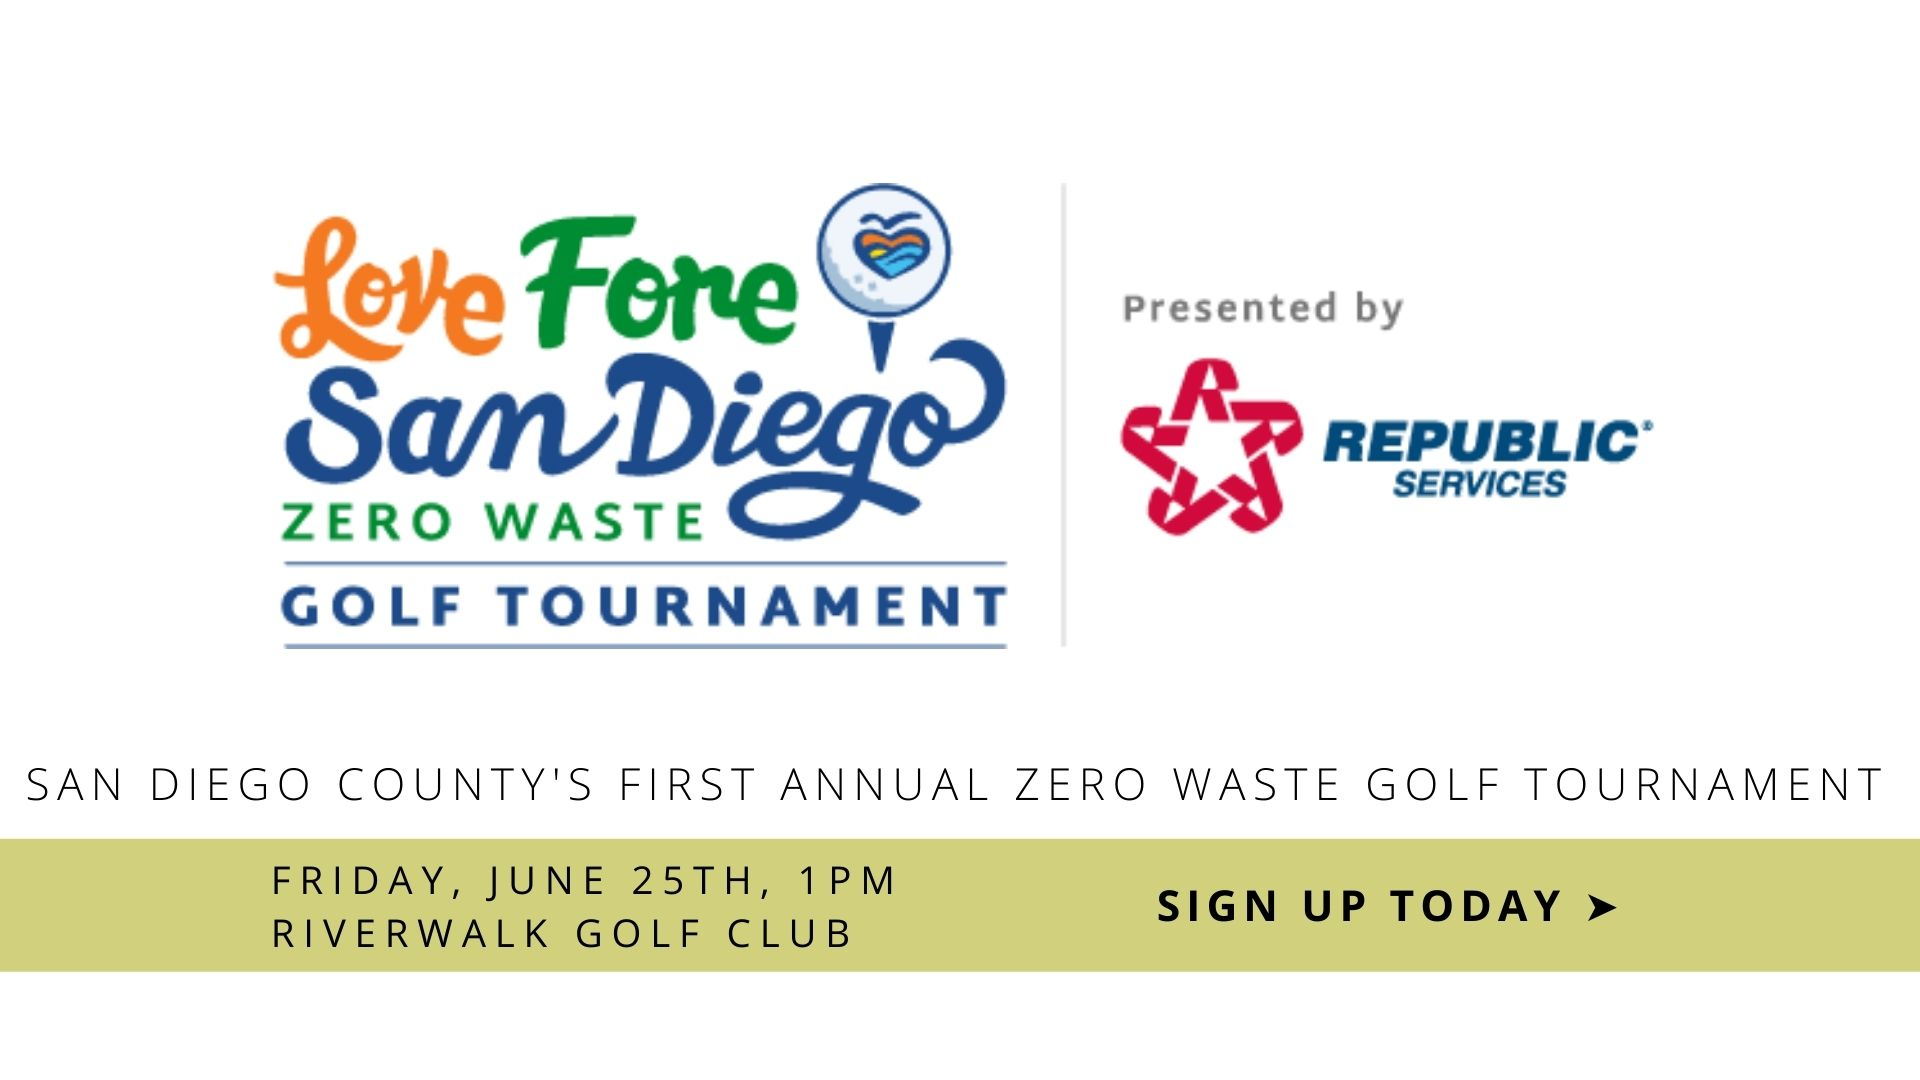 Love Fore San Diego